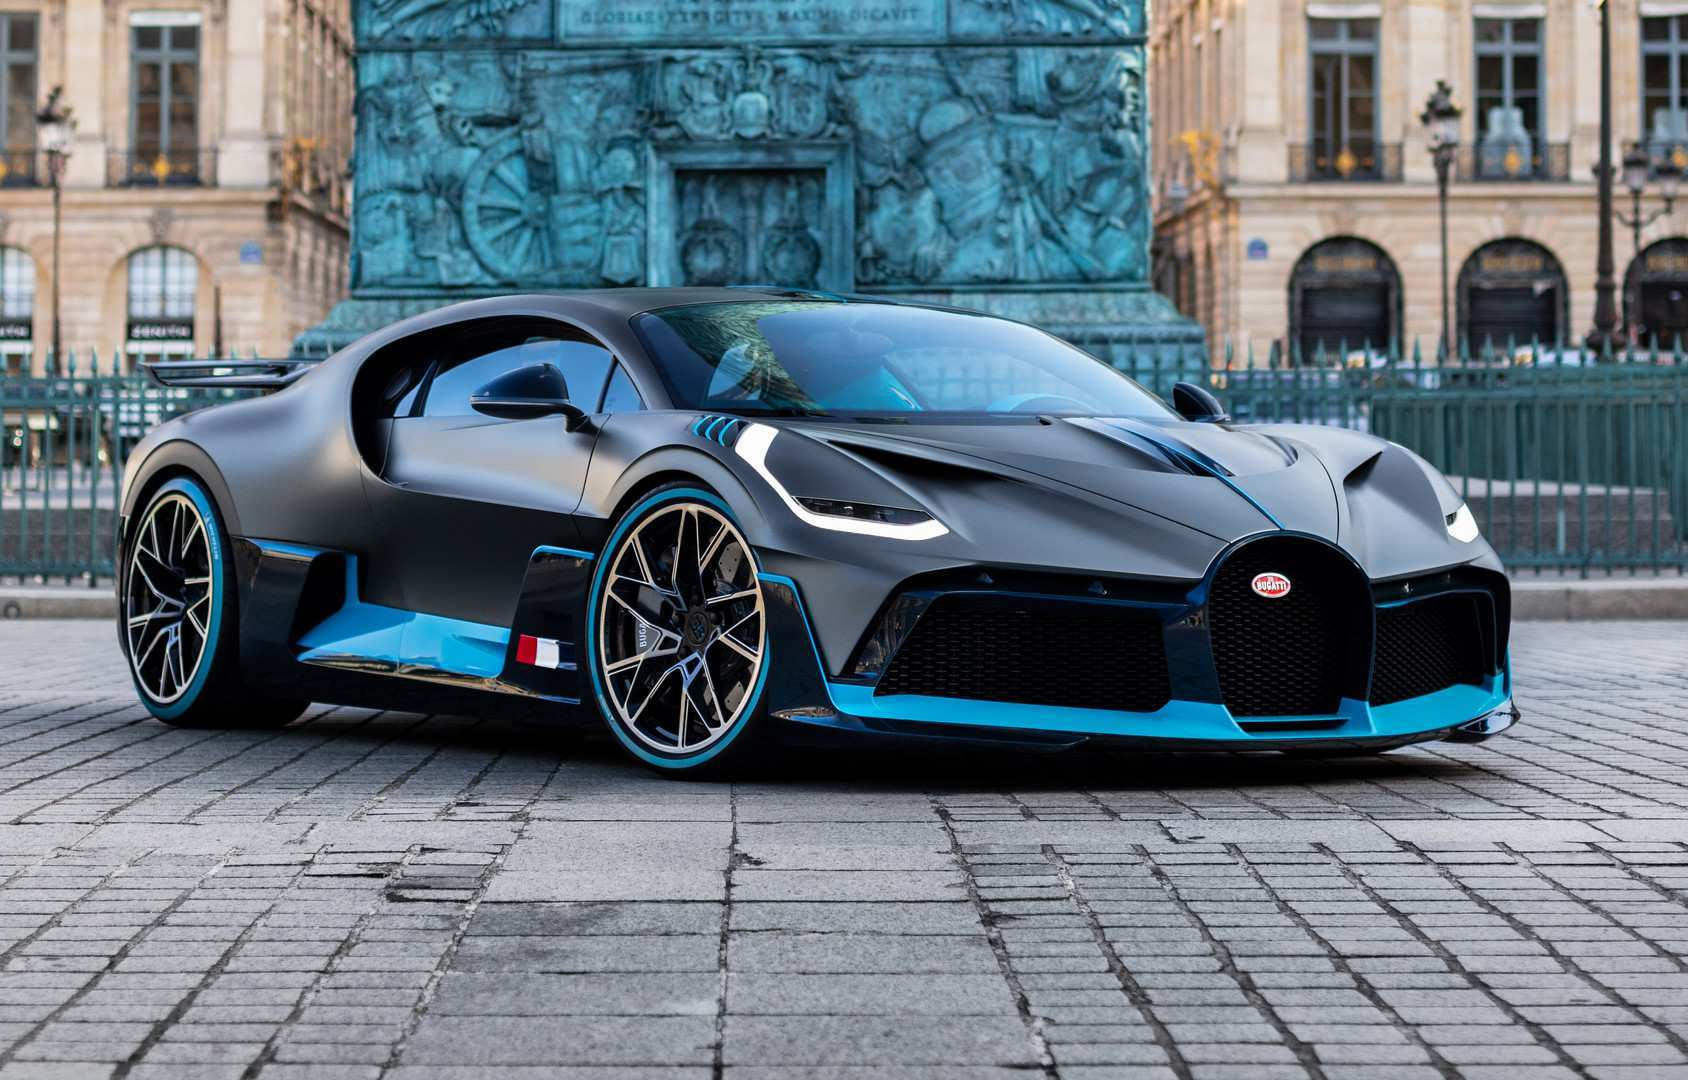 20 All New 2019 Bugatti For Sale Picture by 2019 Bugatti For Sale